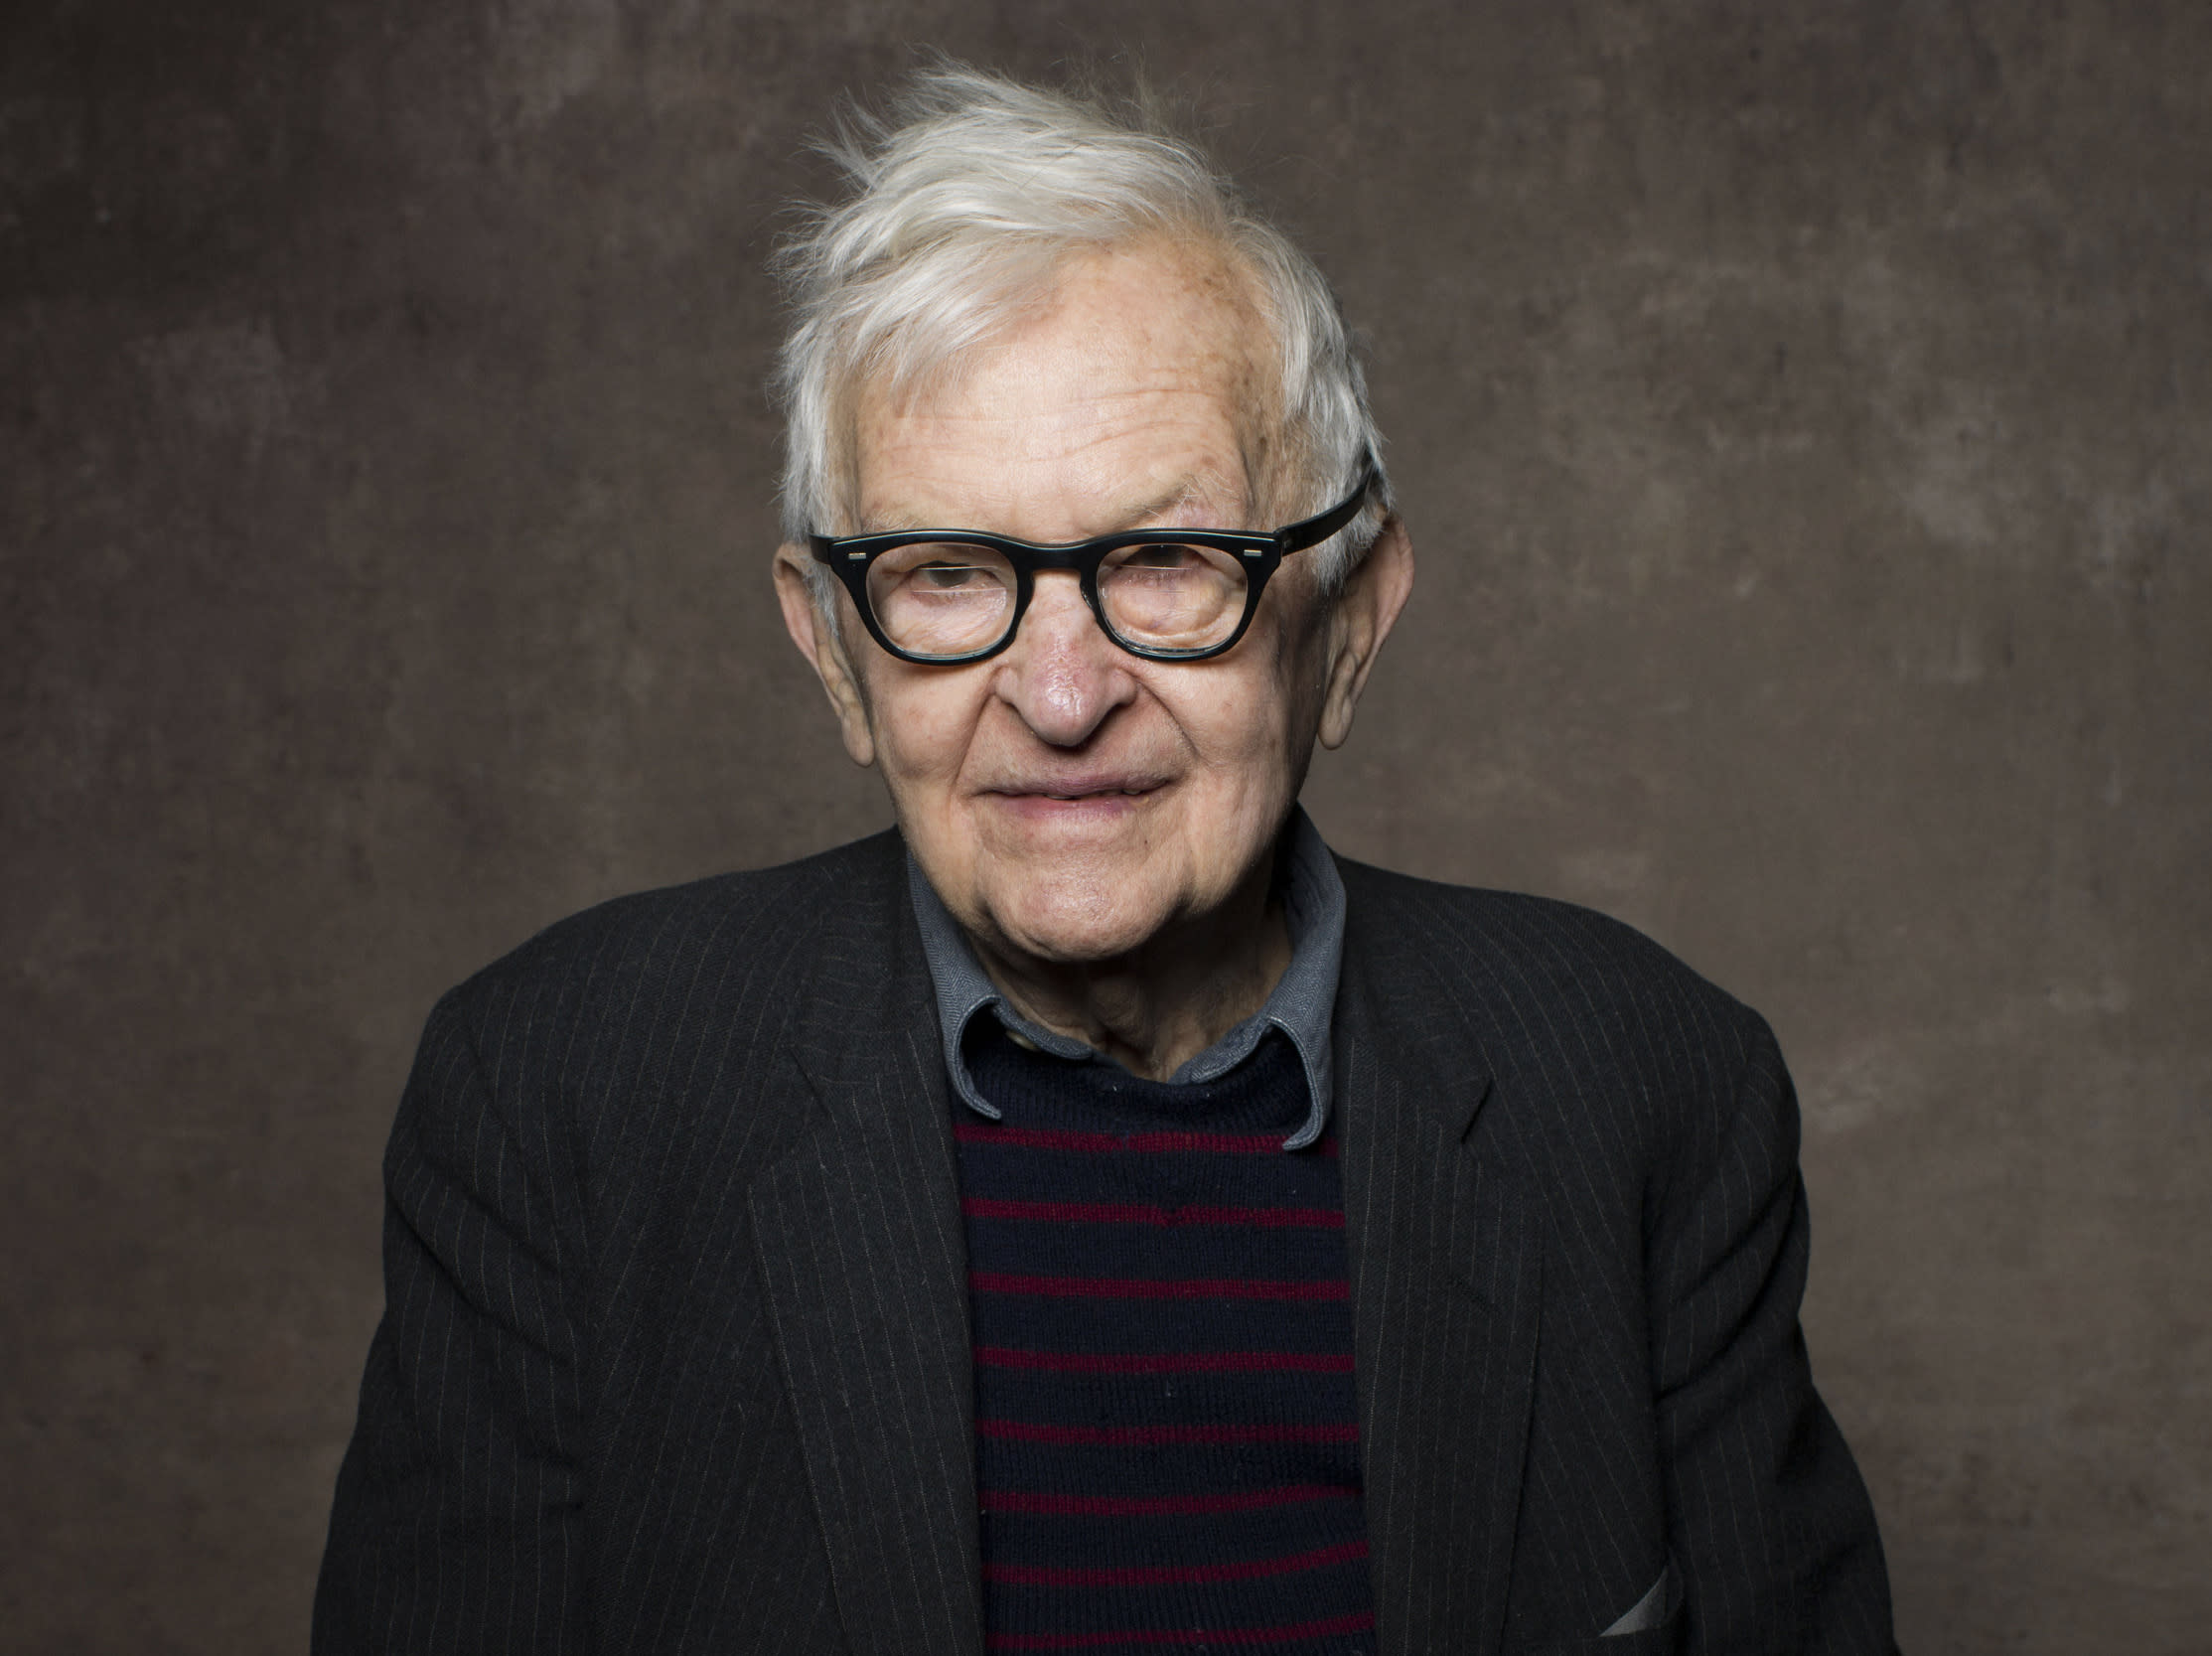 Documentary filmmaker Albert Maysles dies at 88